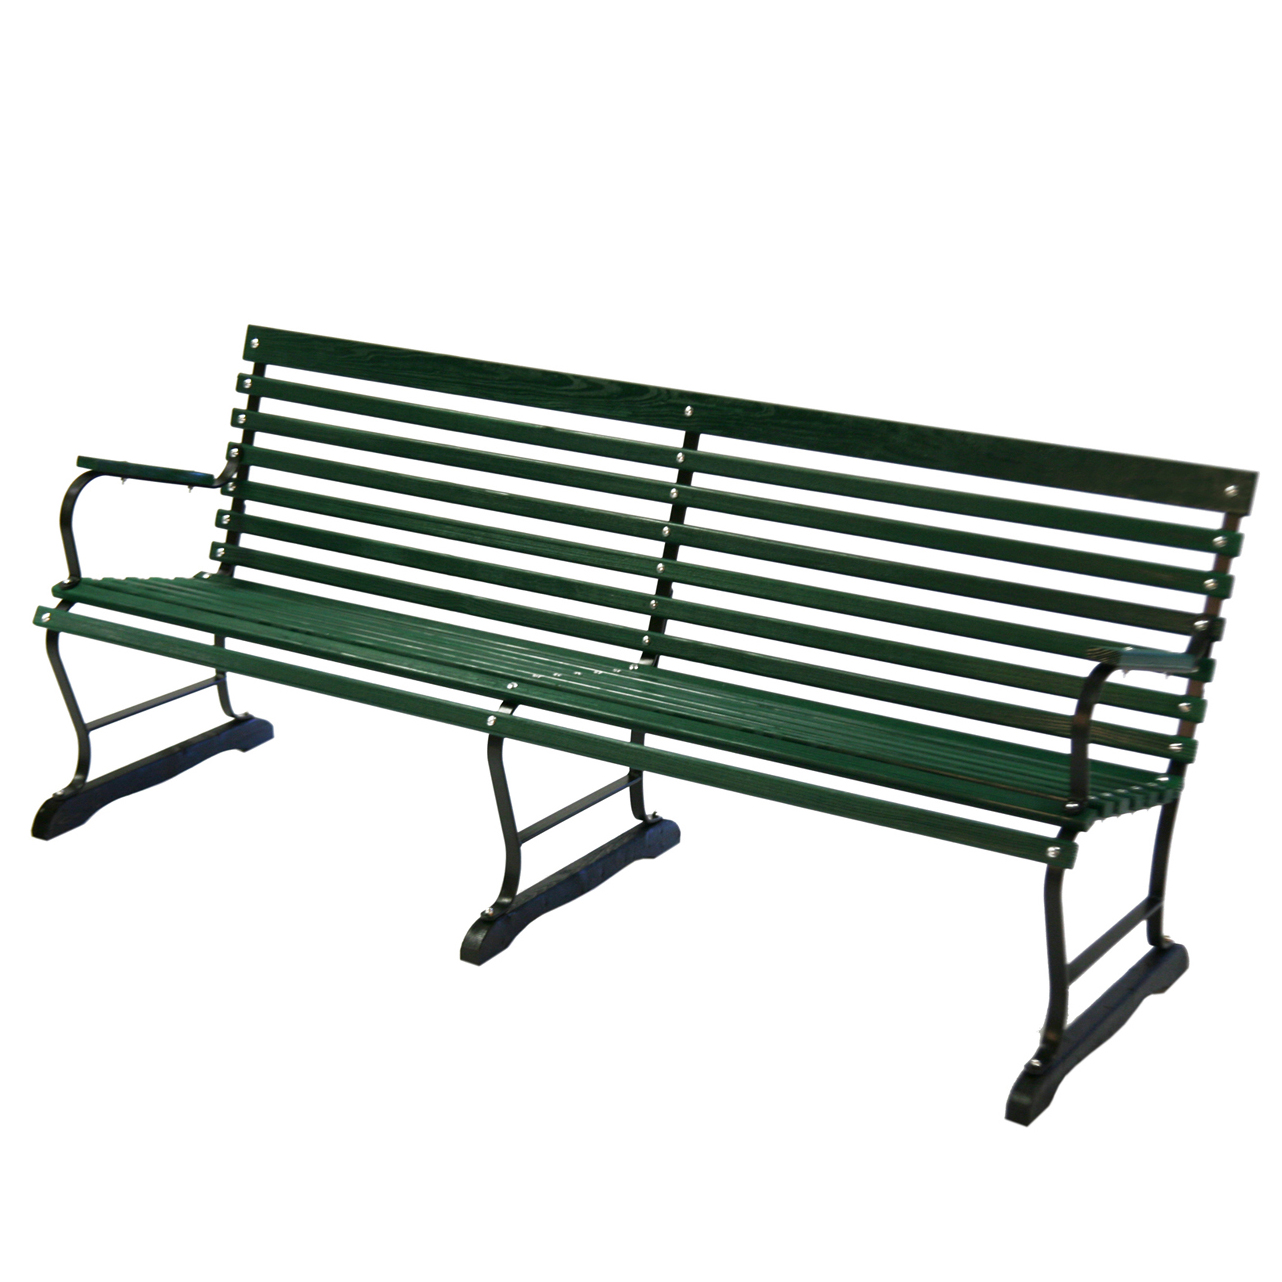 Paddock Style Bench